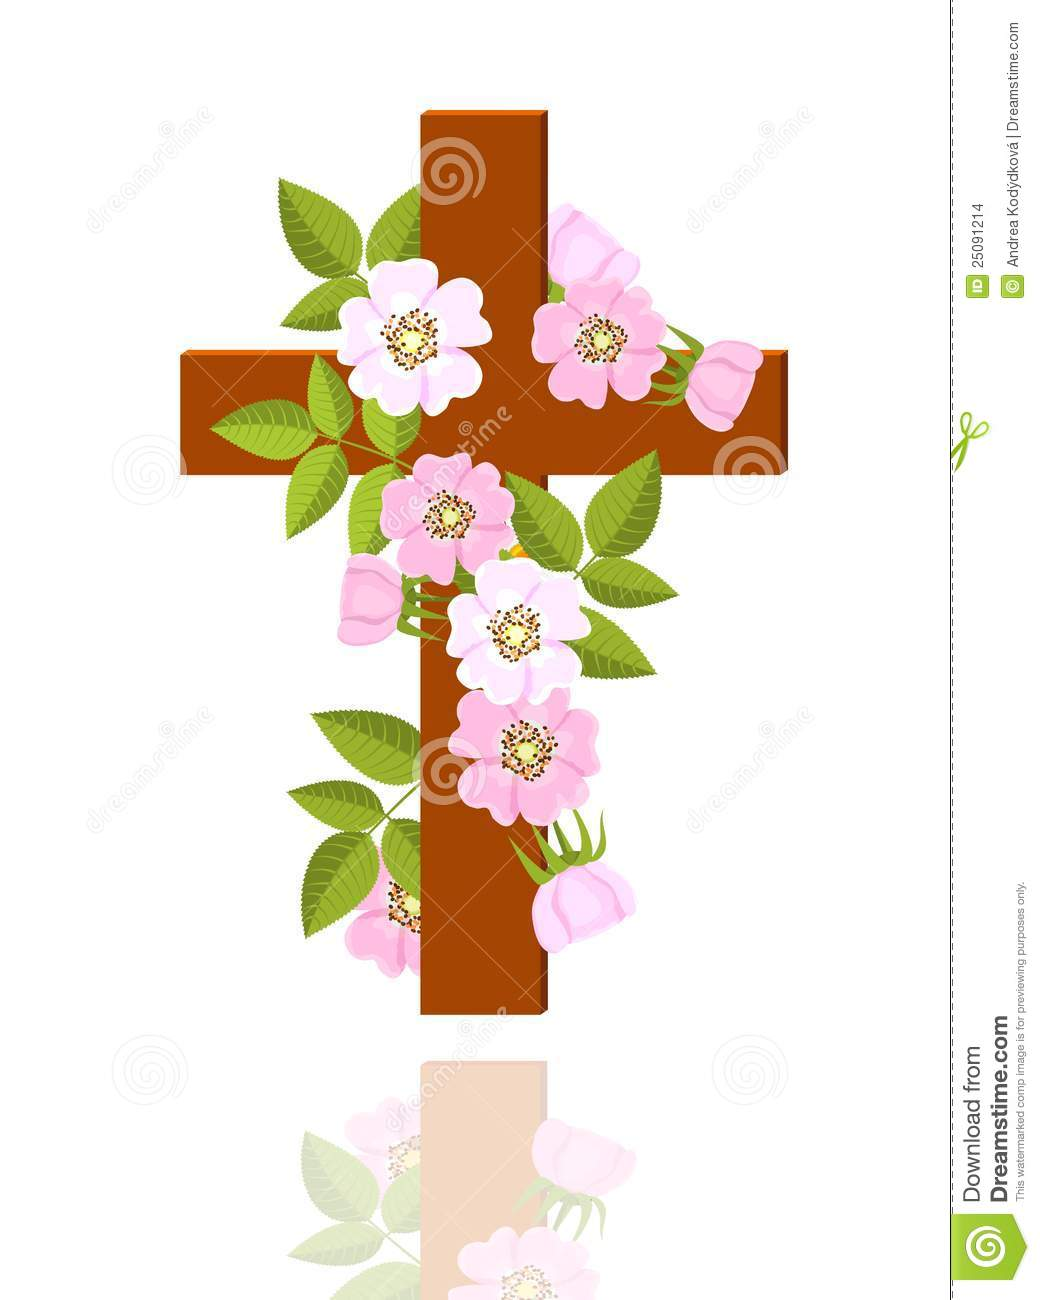 Cross With Flowers Clipart - Clipart Kid clipart stock